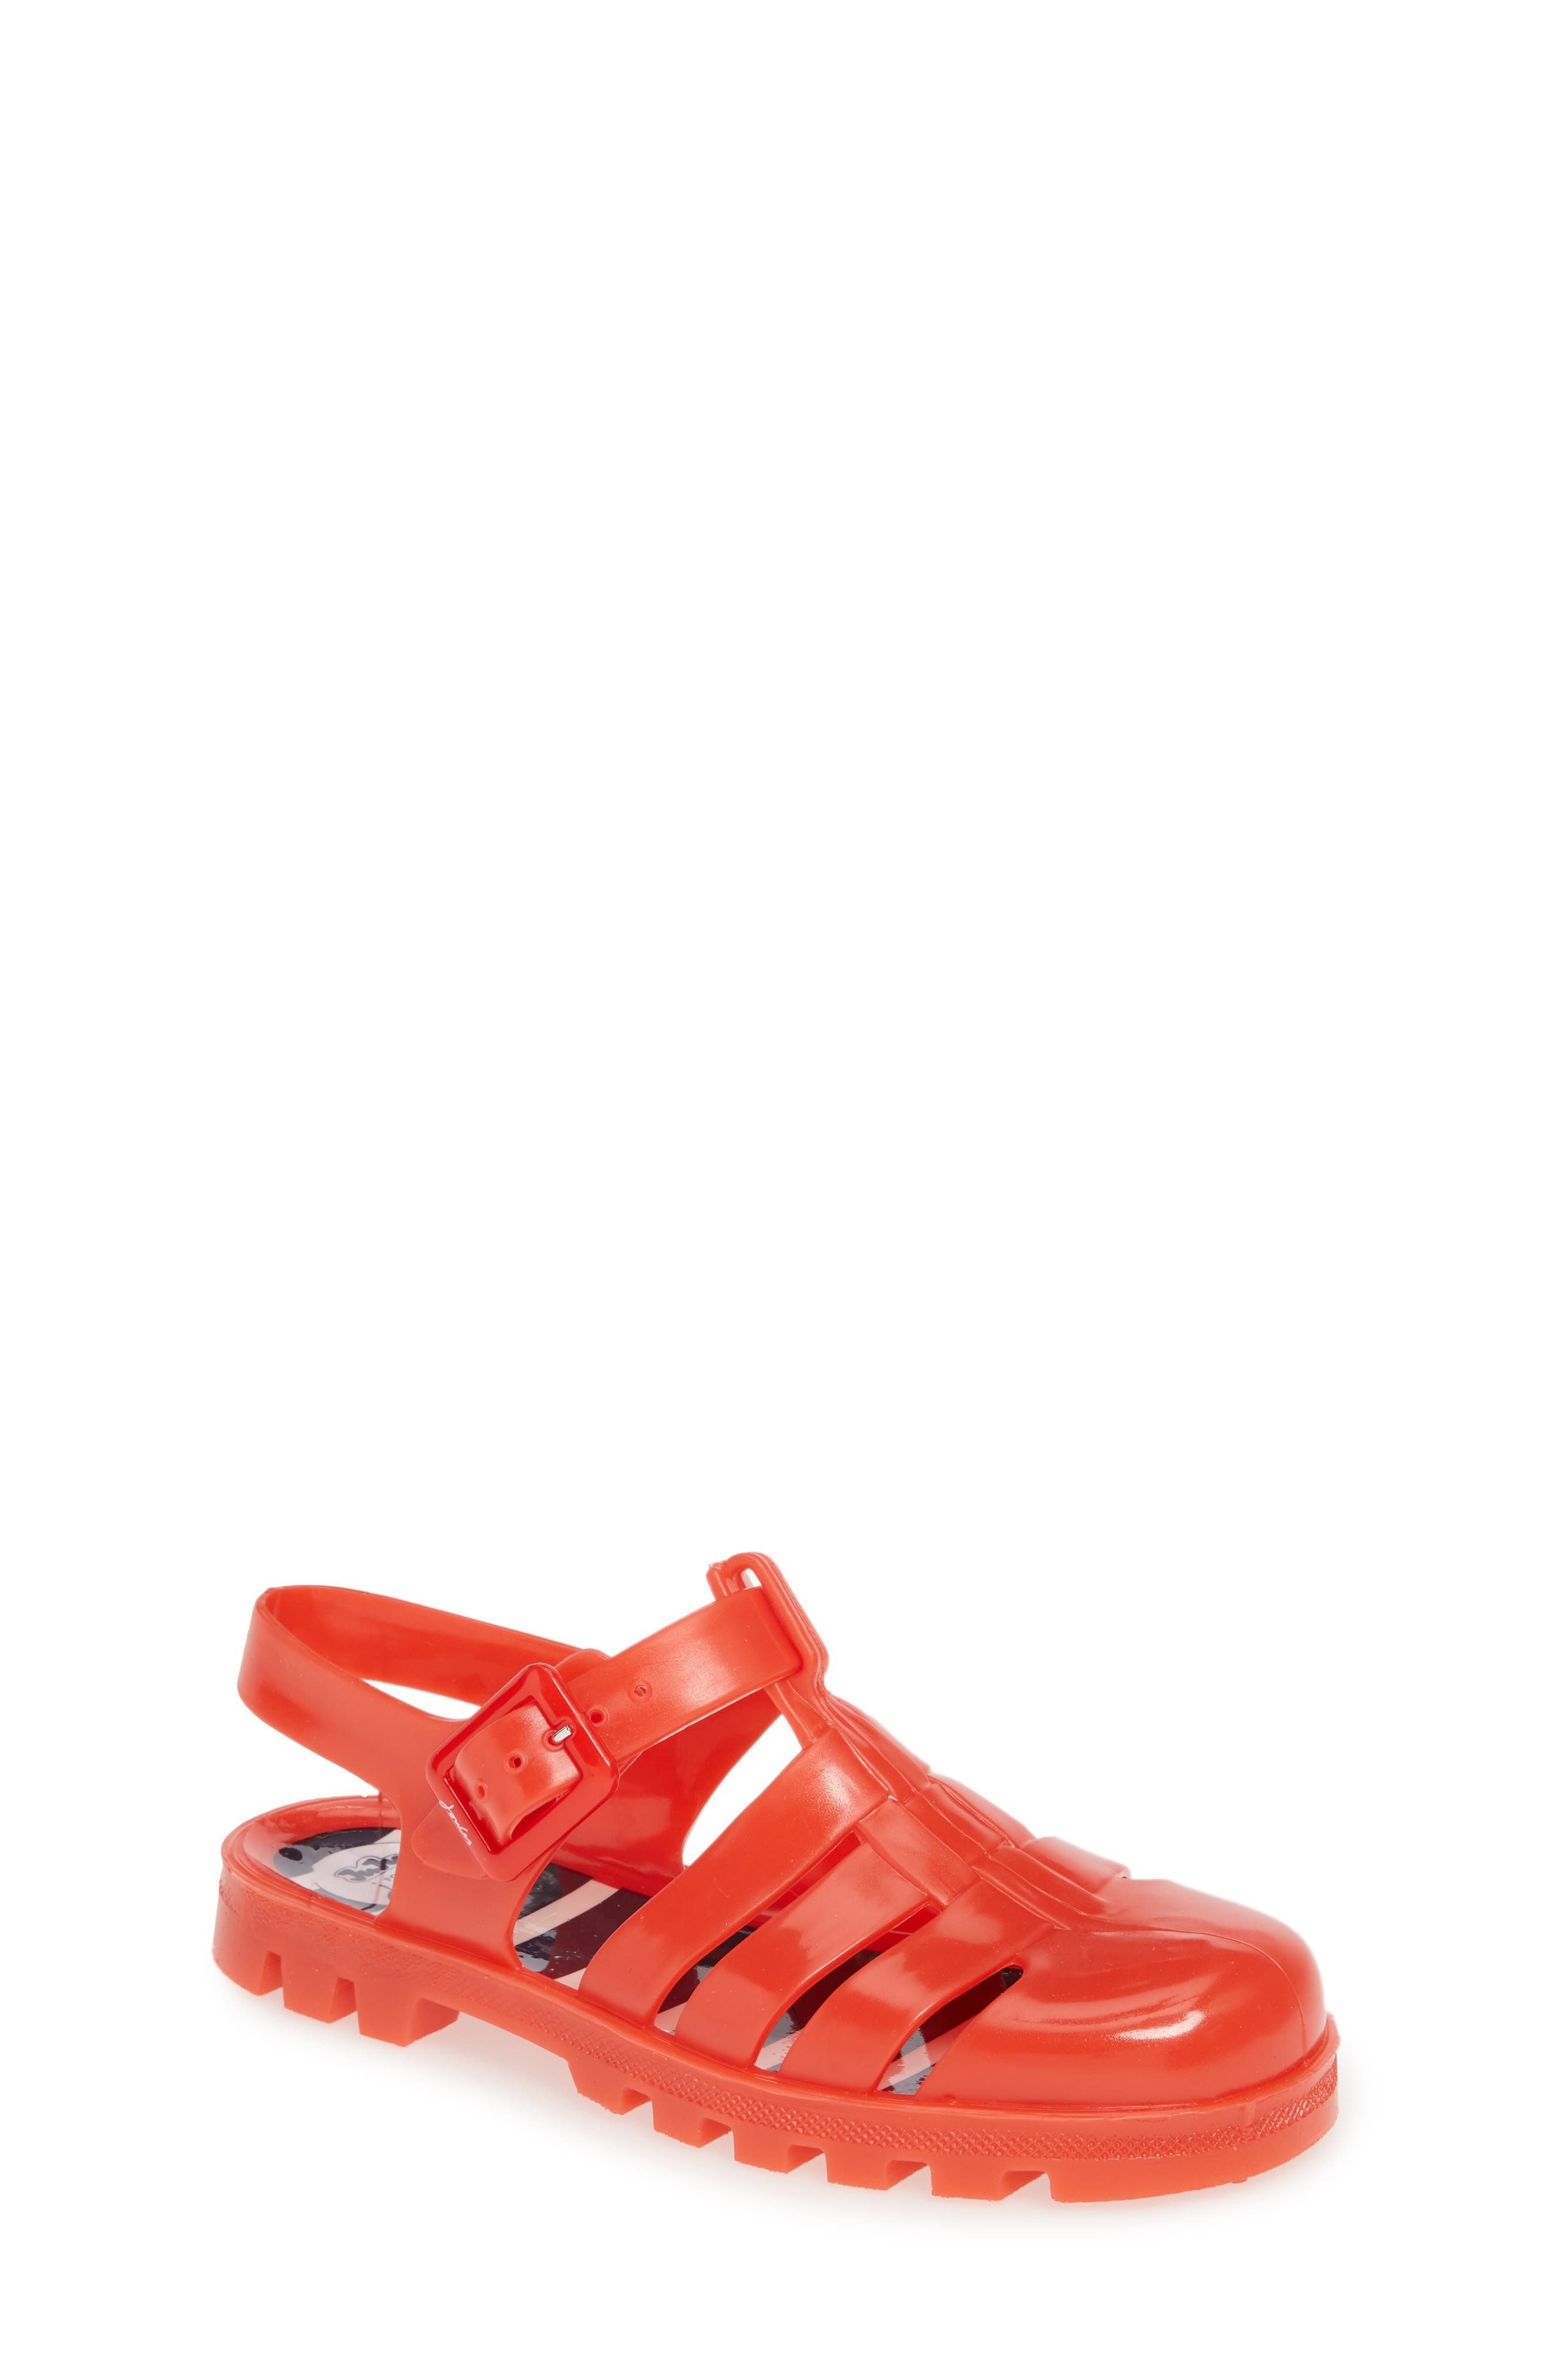 Girls Joules Jelly Sandal Size 4 M  Red